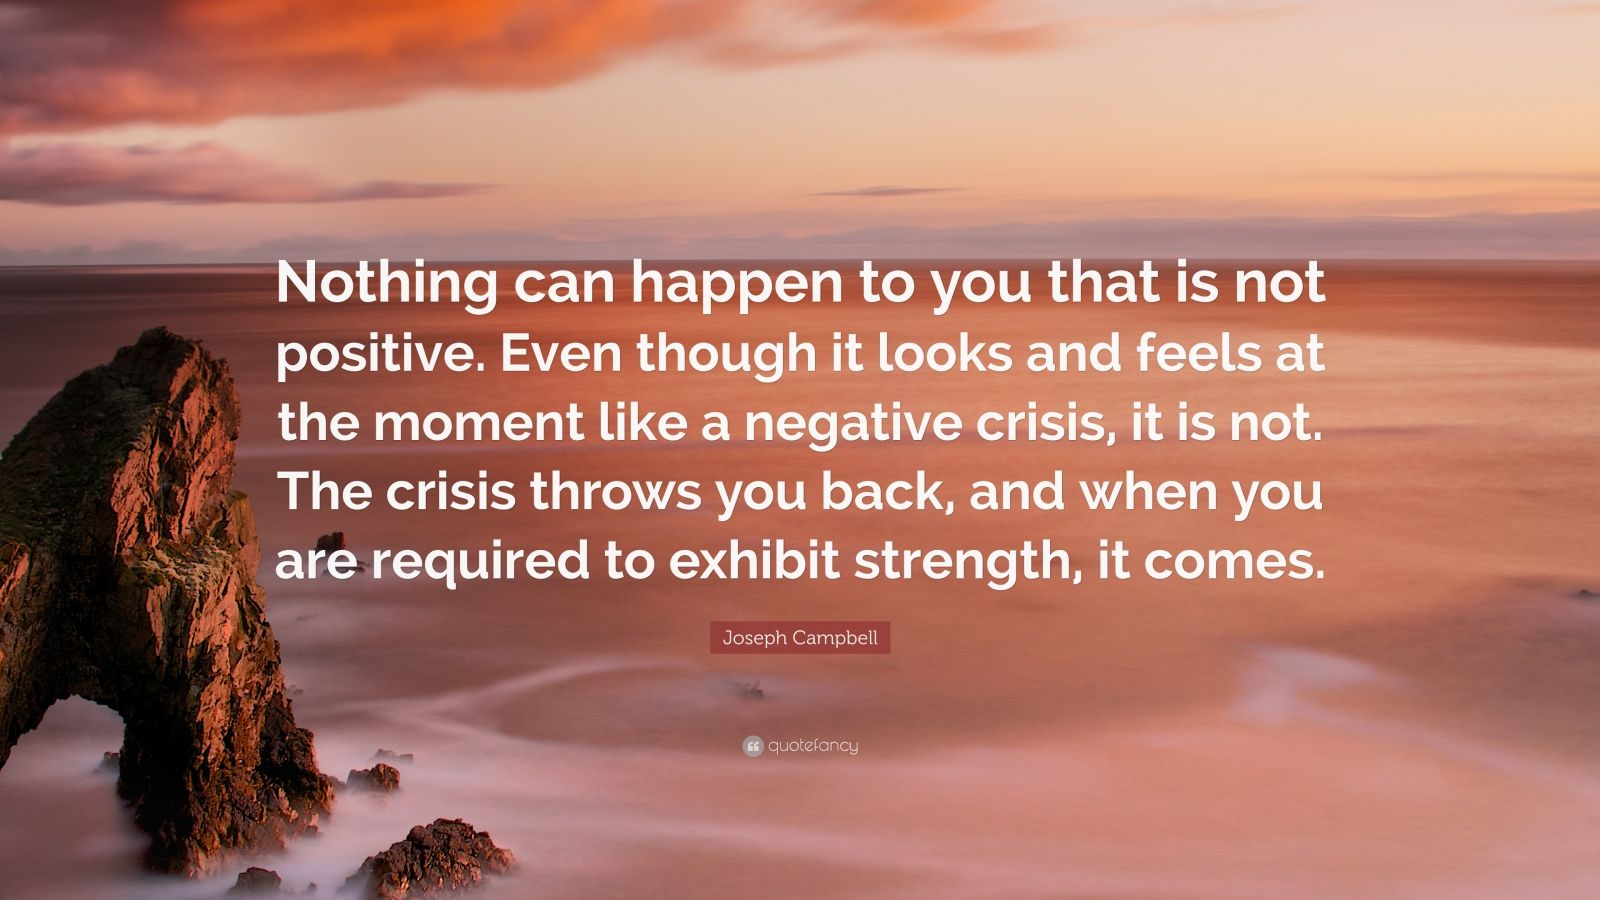 "Joseph Campbell Quote: ""Nothing can happen to you that is not positive. Even though it looks and feels at the moment like a negative crisis, it is not. The crisis throws you back, and when you are required to exhibit strength, it comes."""